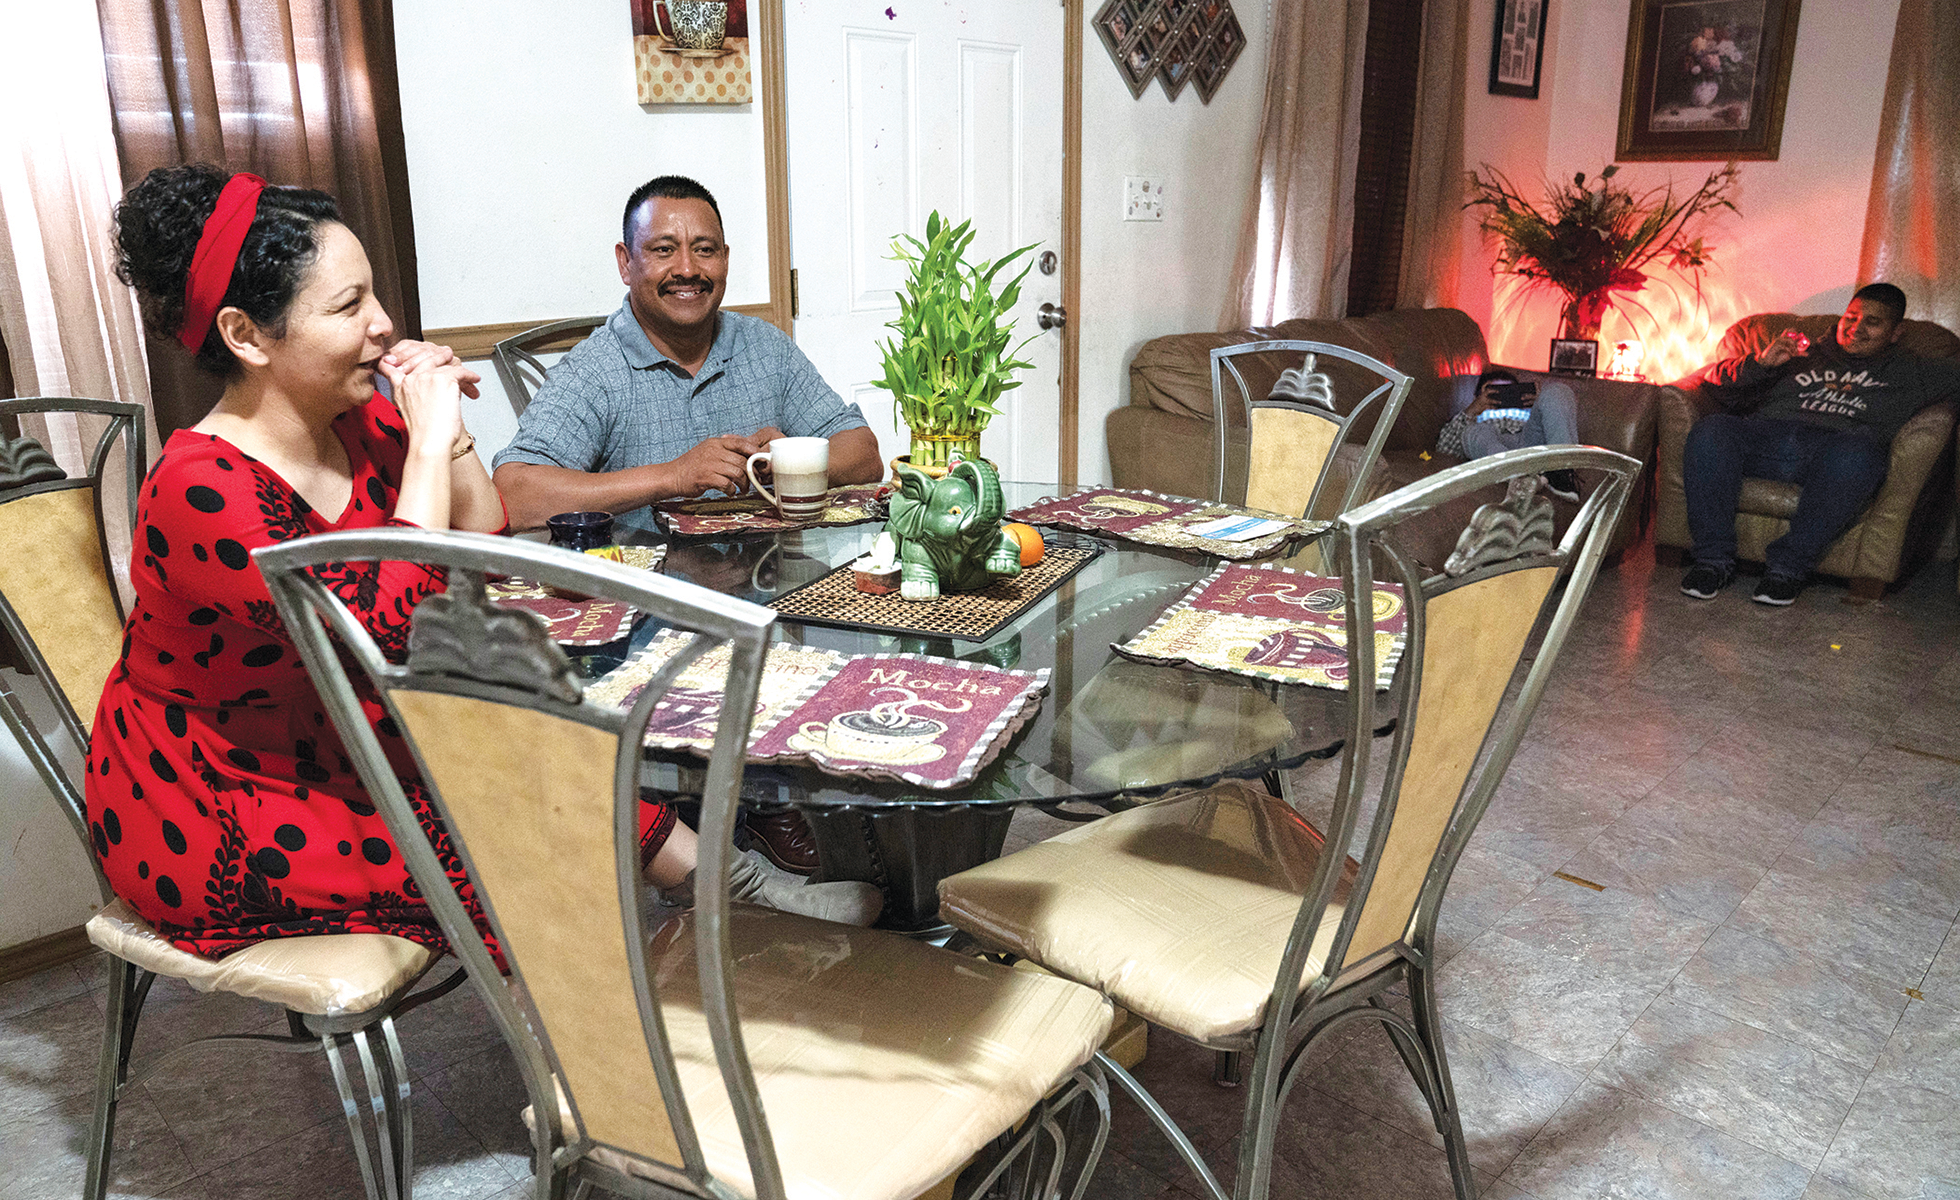 Capetillo and her husband sit at their kitchen table in the home they share with their four kids.